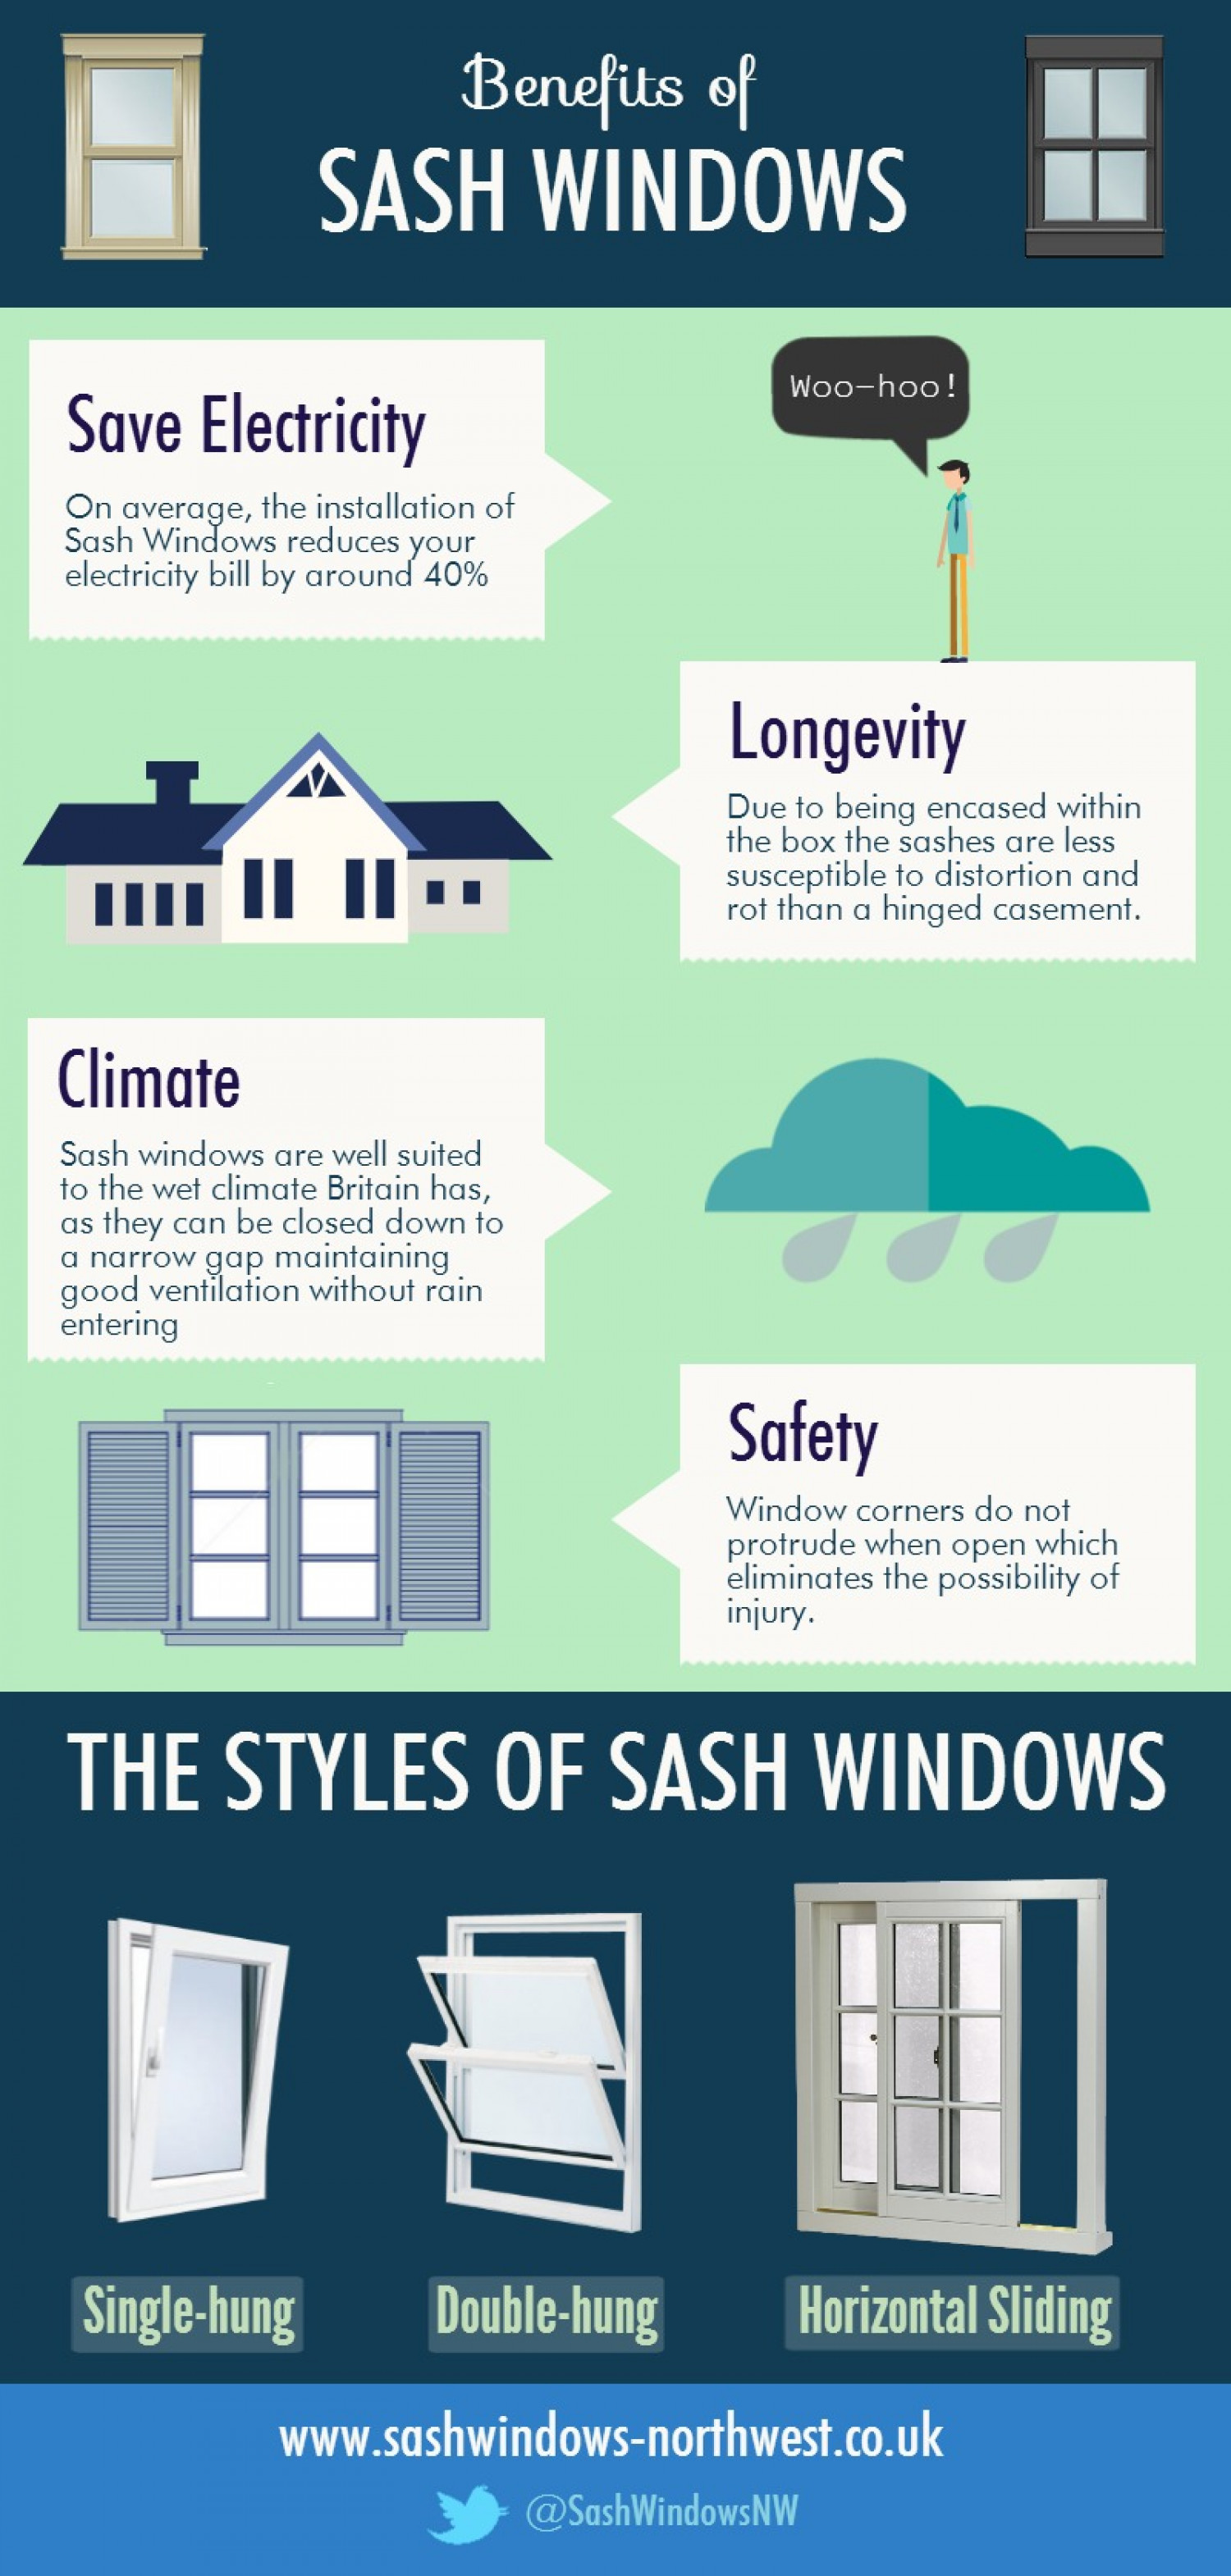 Benefits of Sash Windows Infographic